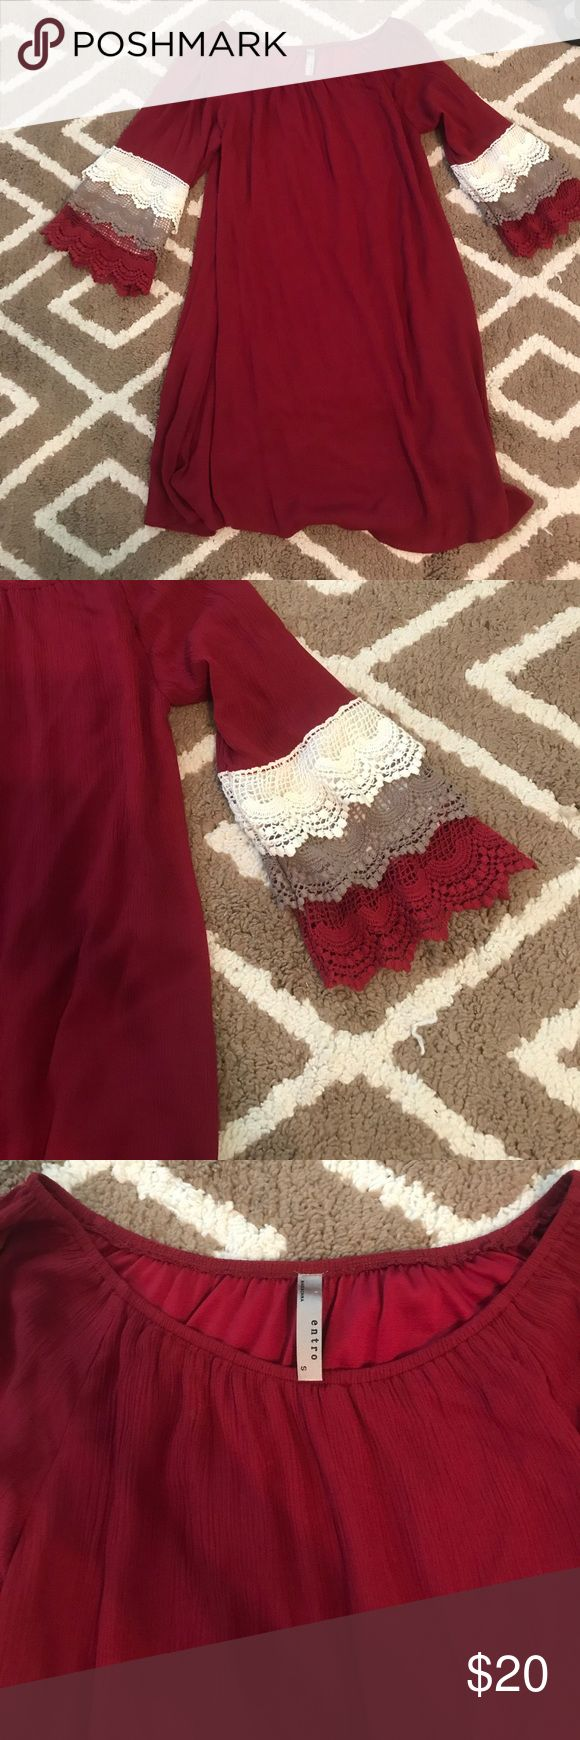 Dark red dress Cute and fun dark red dress! Excellent condition and extremely comfortable. This dress is also lined. Size small Dresses